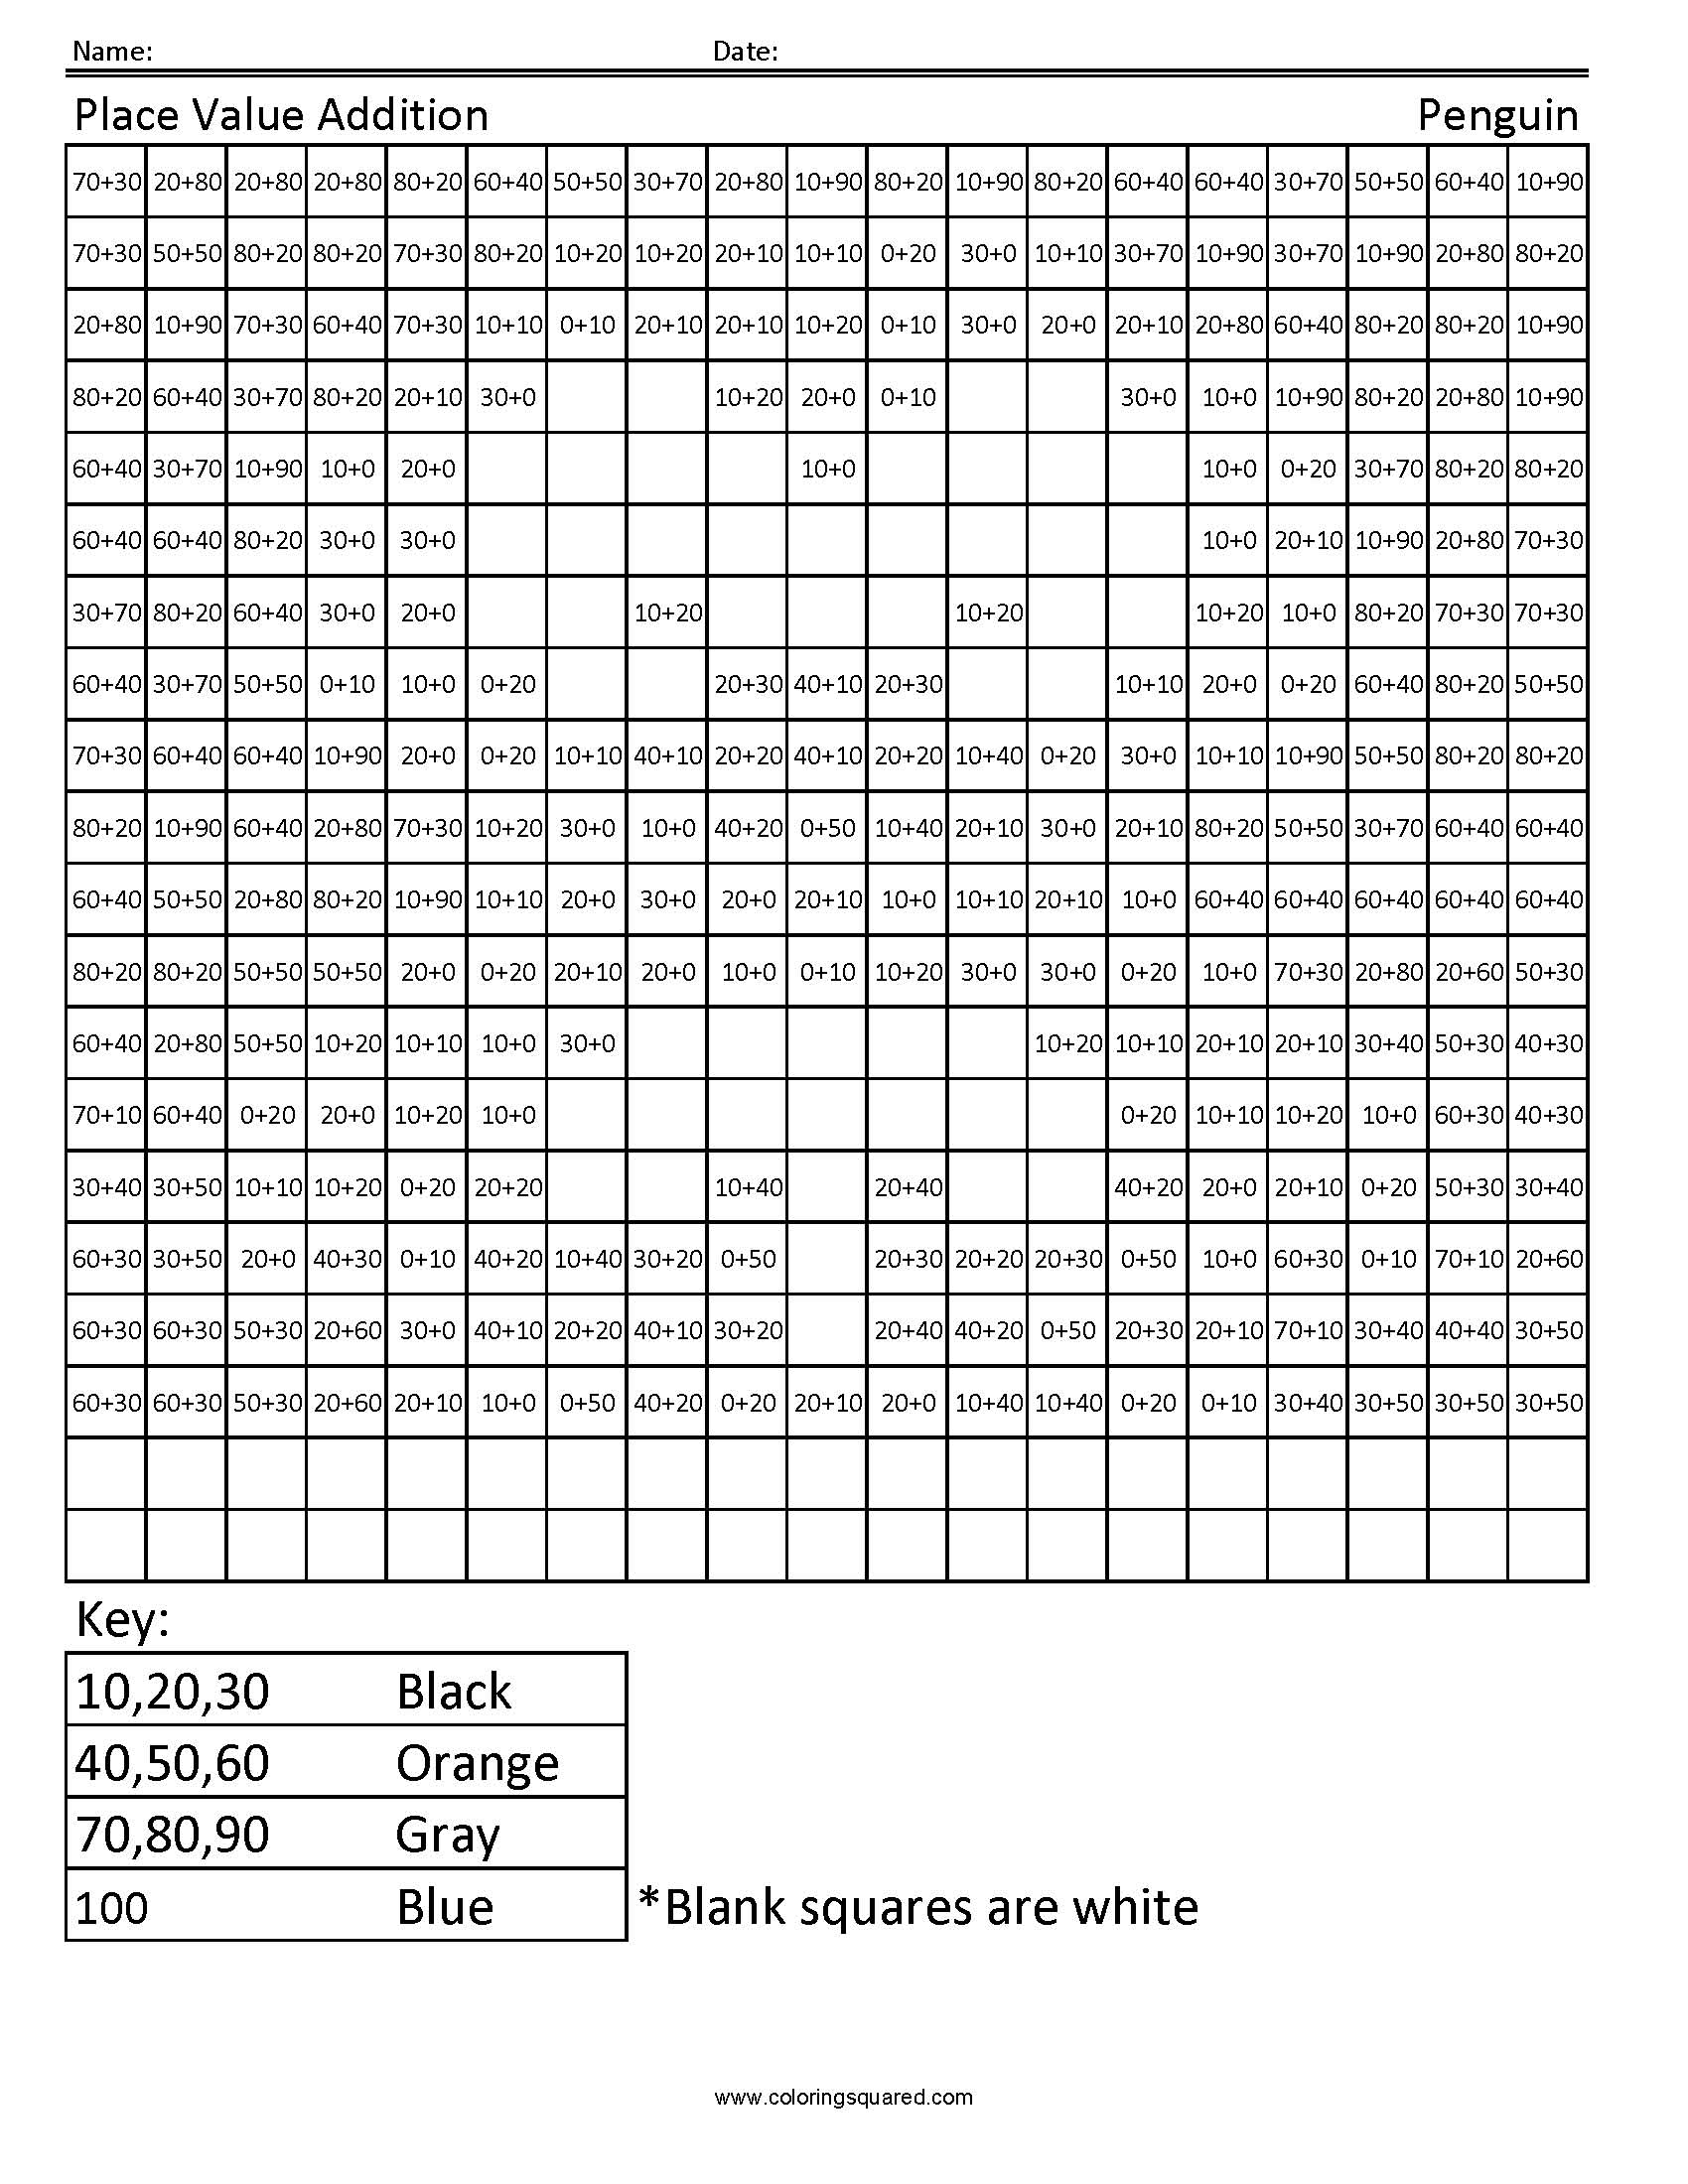 Worksheet Place Value For 1st Grade 1g32 place value adding penguin first grade math coloring squared image information